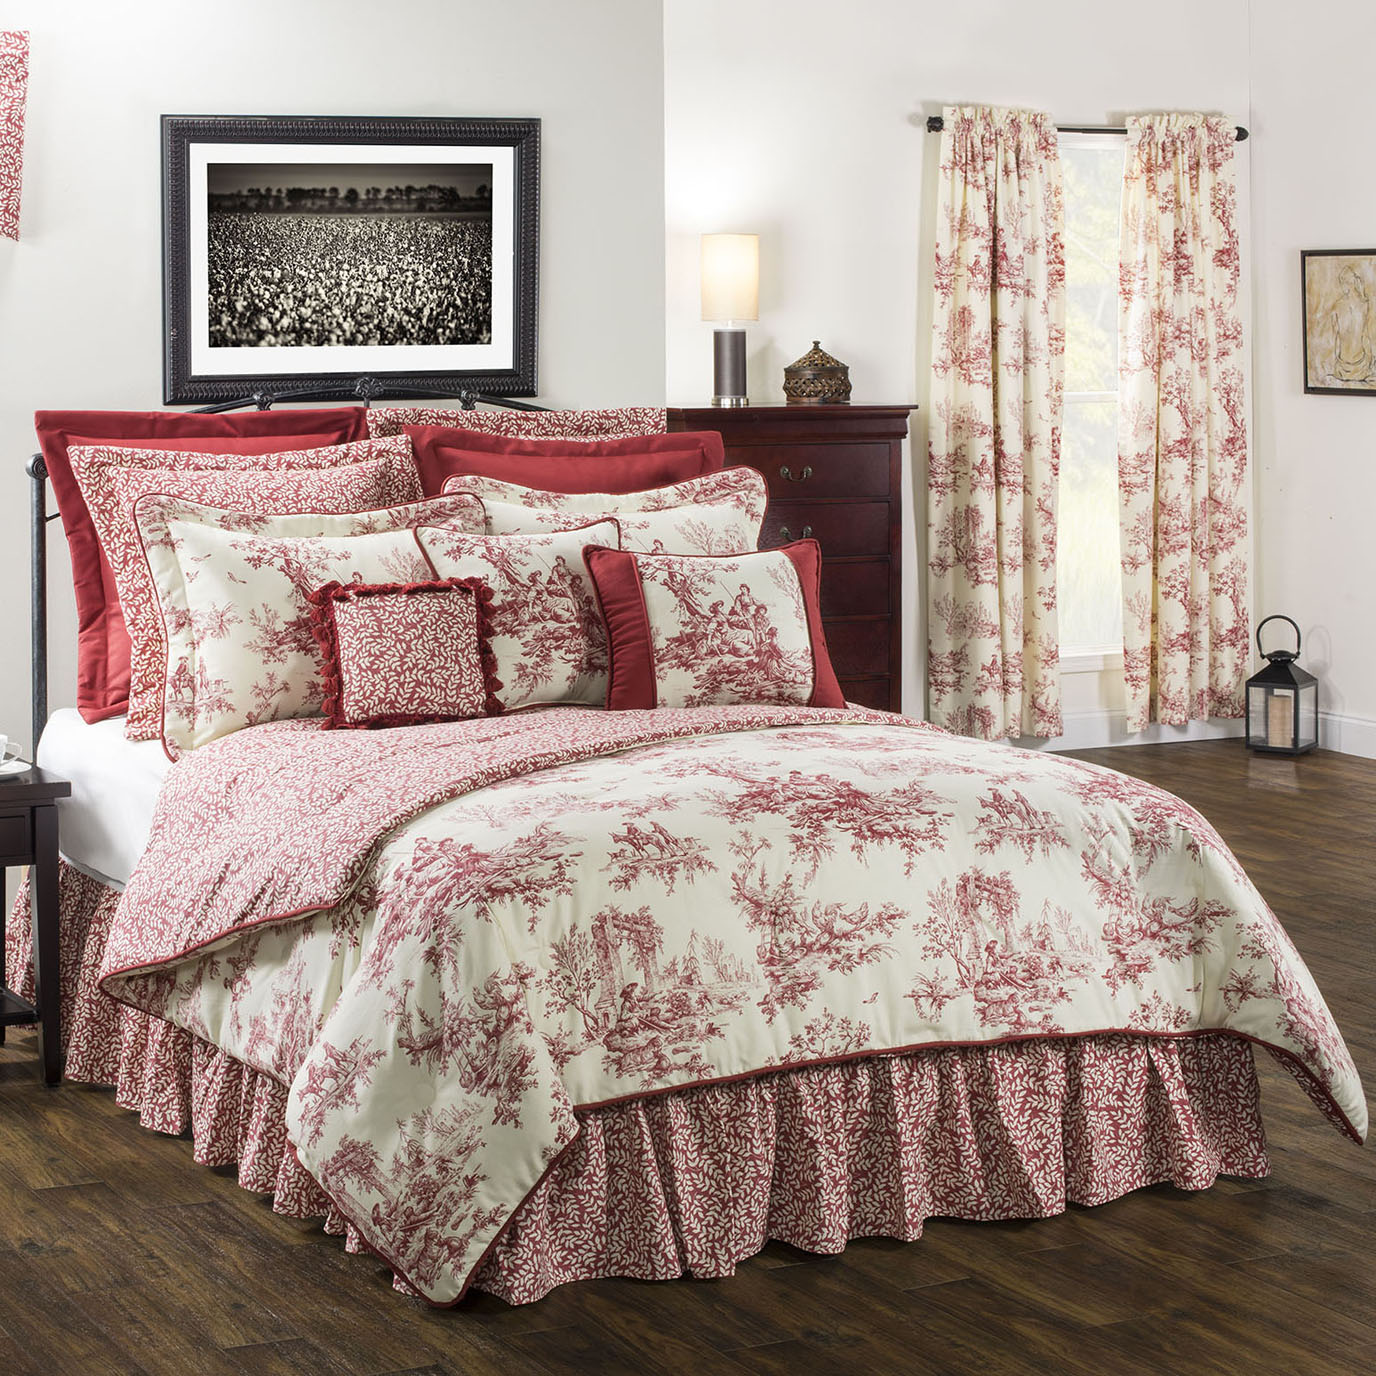 "Bouvier Red Queen Comforter Set(15"" drop bed skirt)"